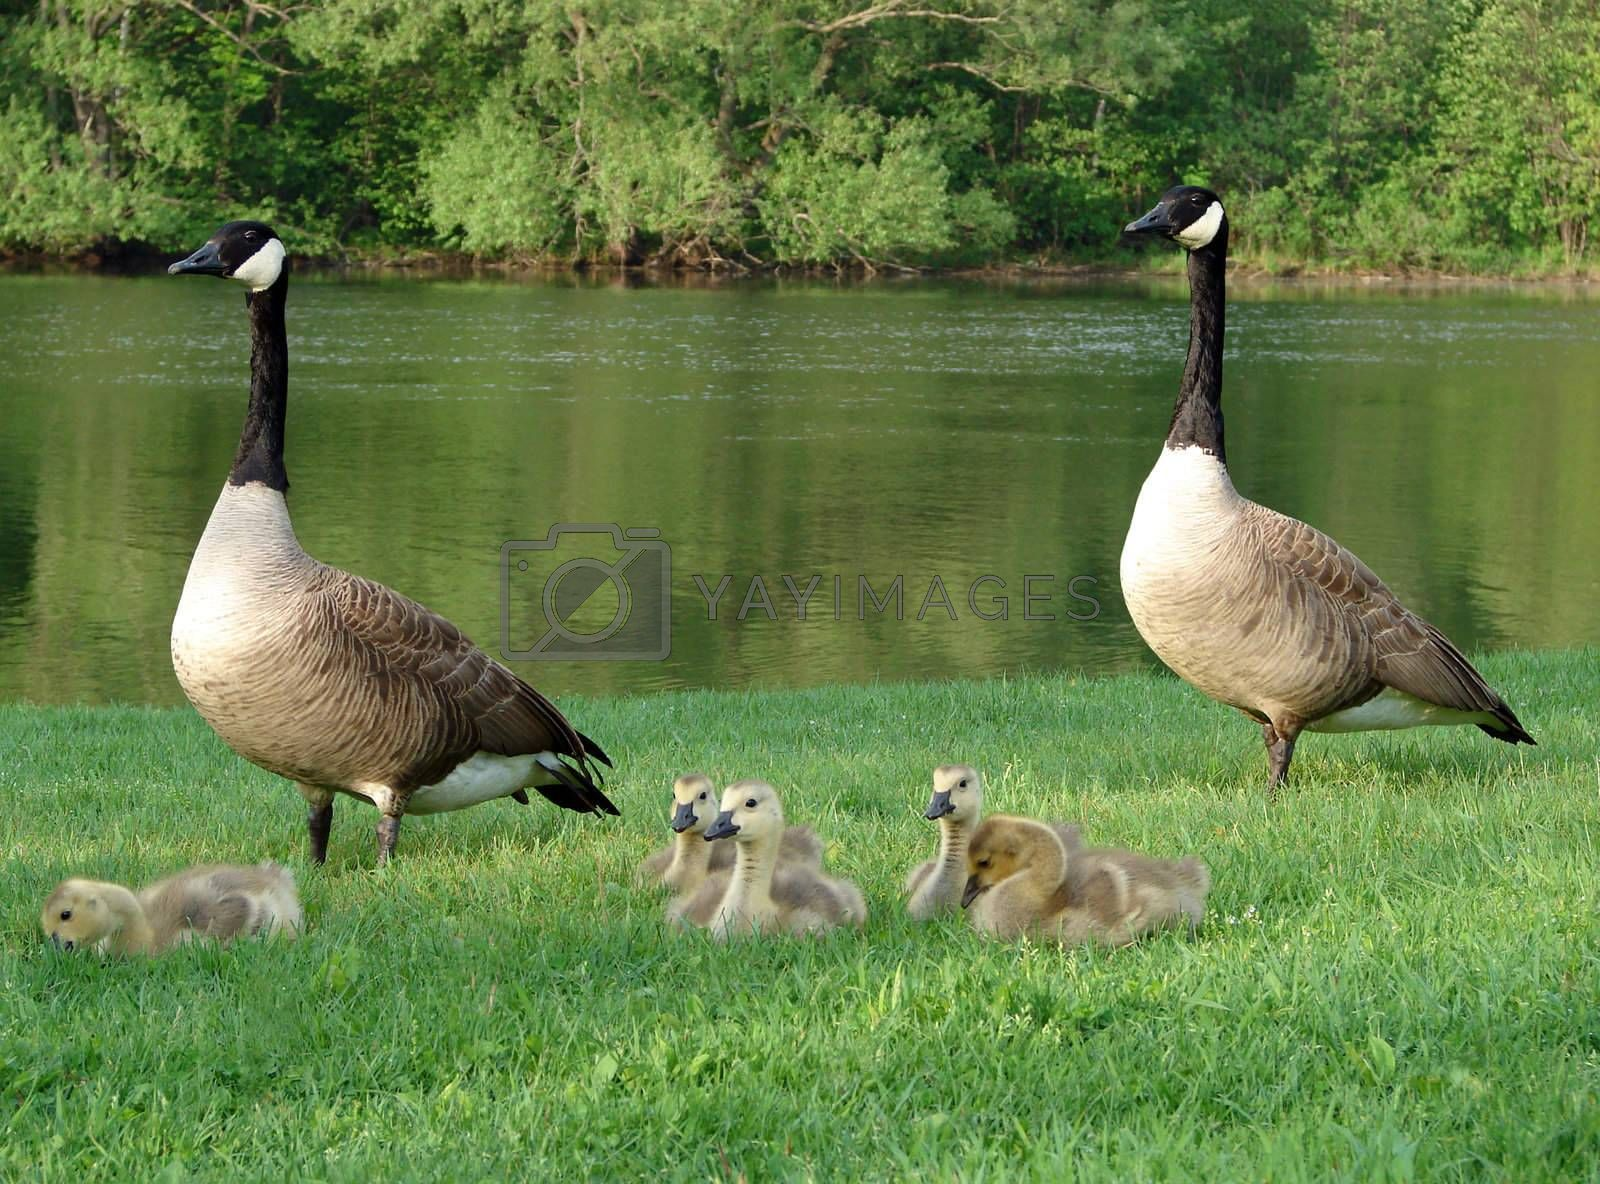 Two geese and their babies by a river